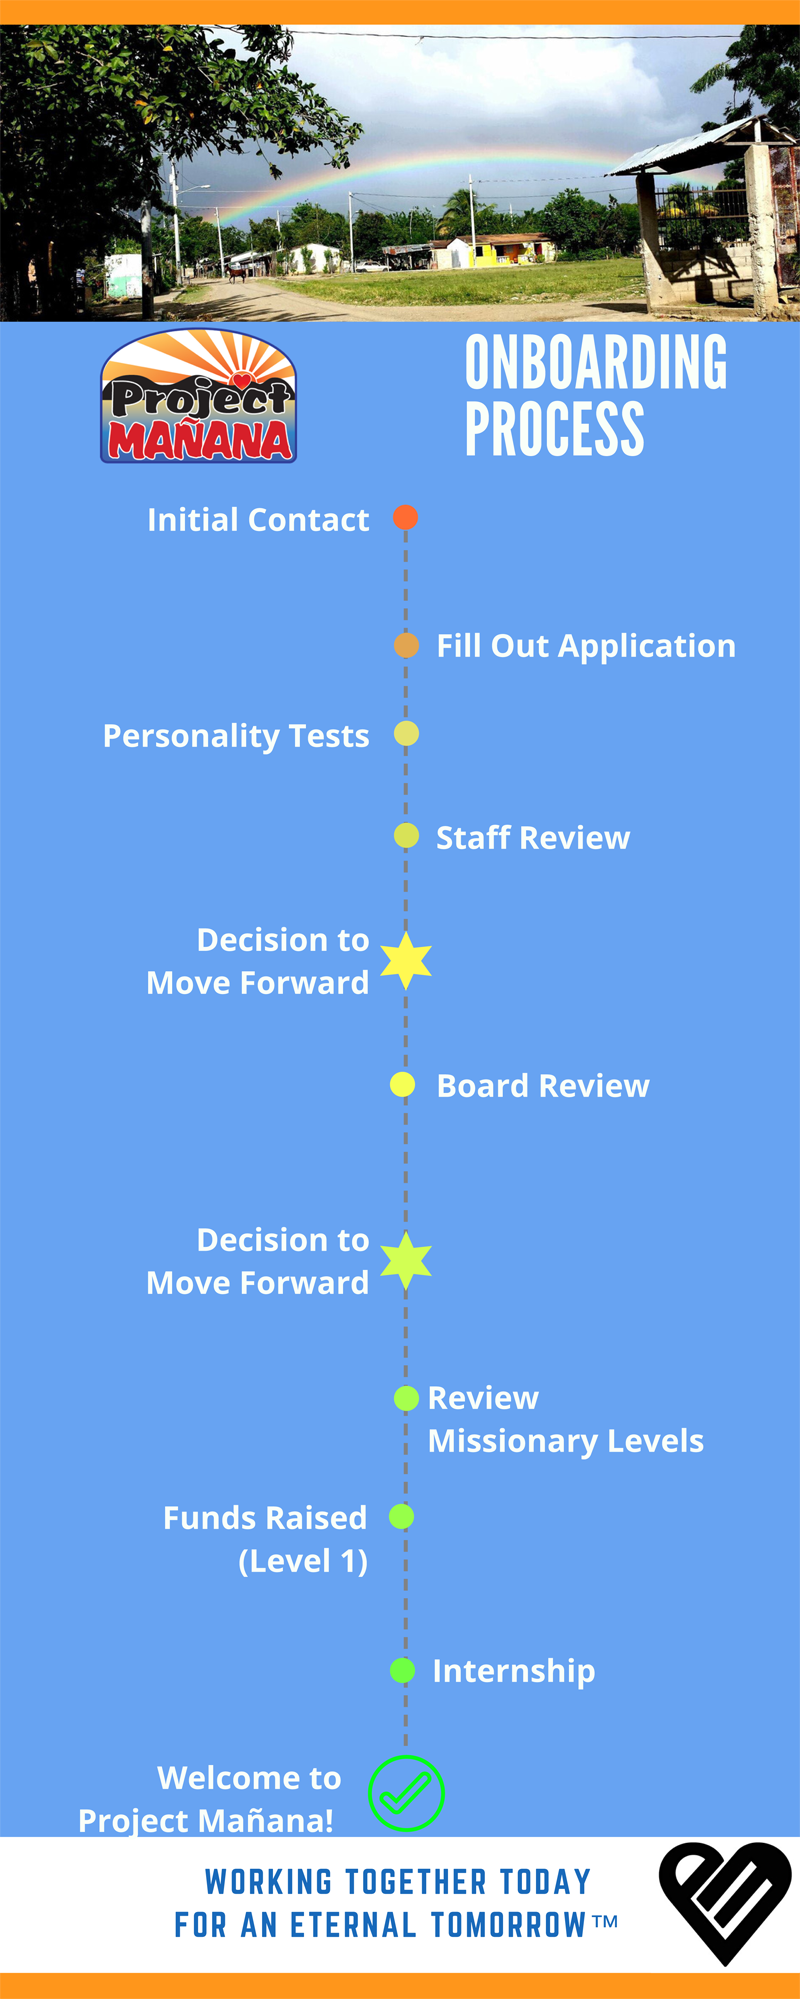 Project Manana Onboarding Process